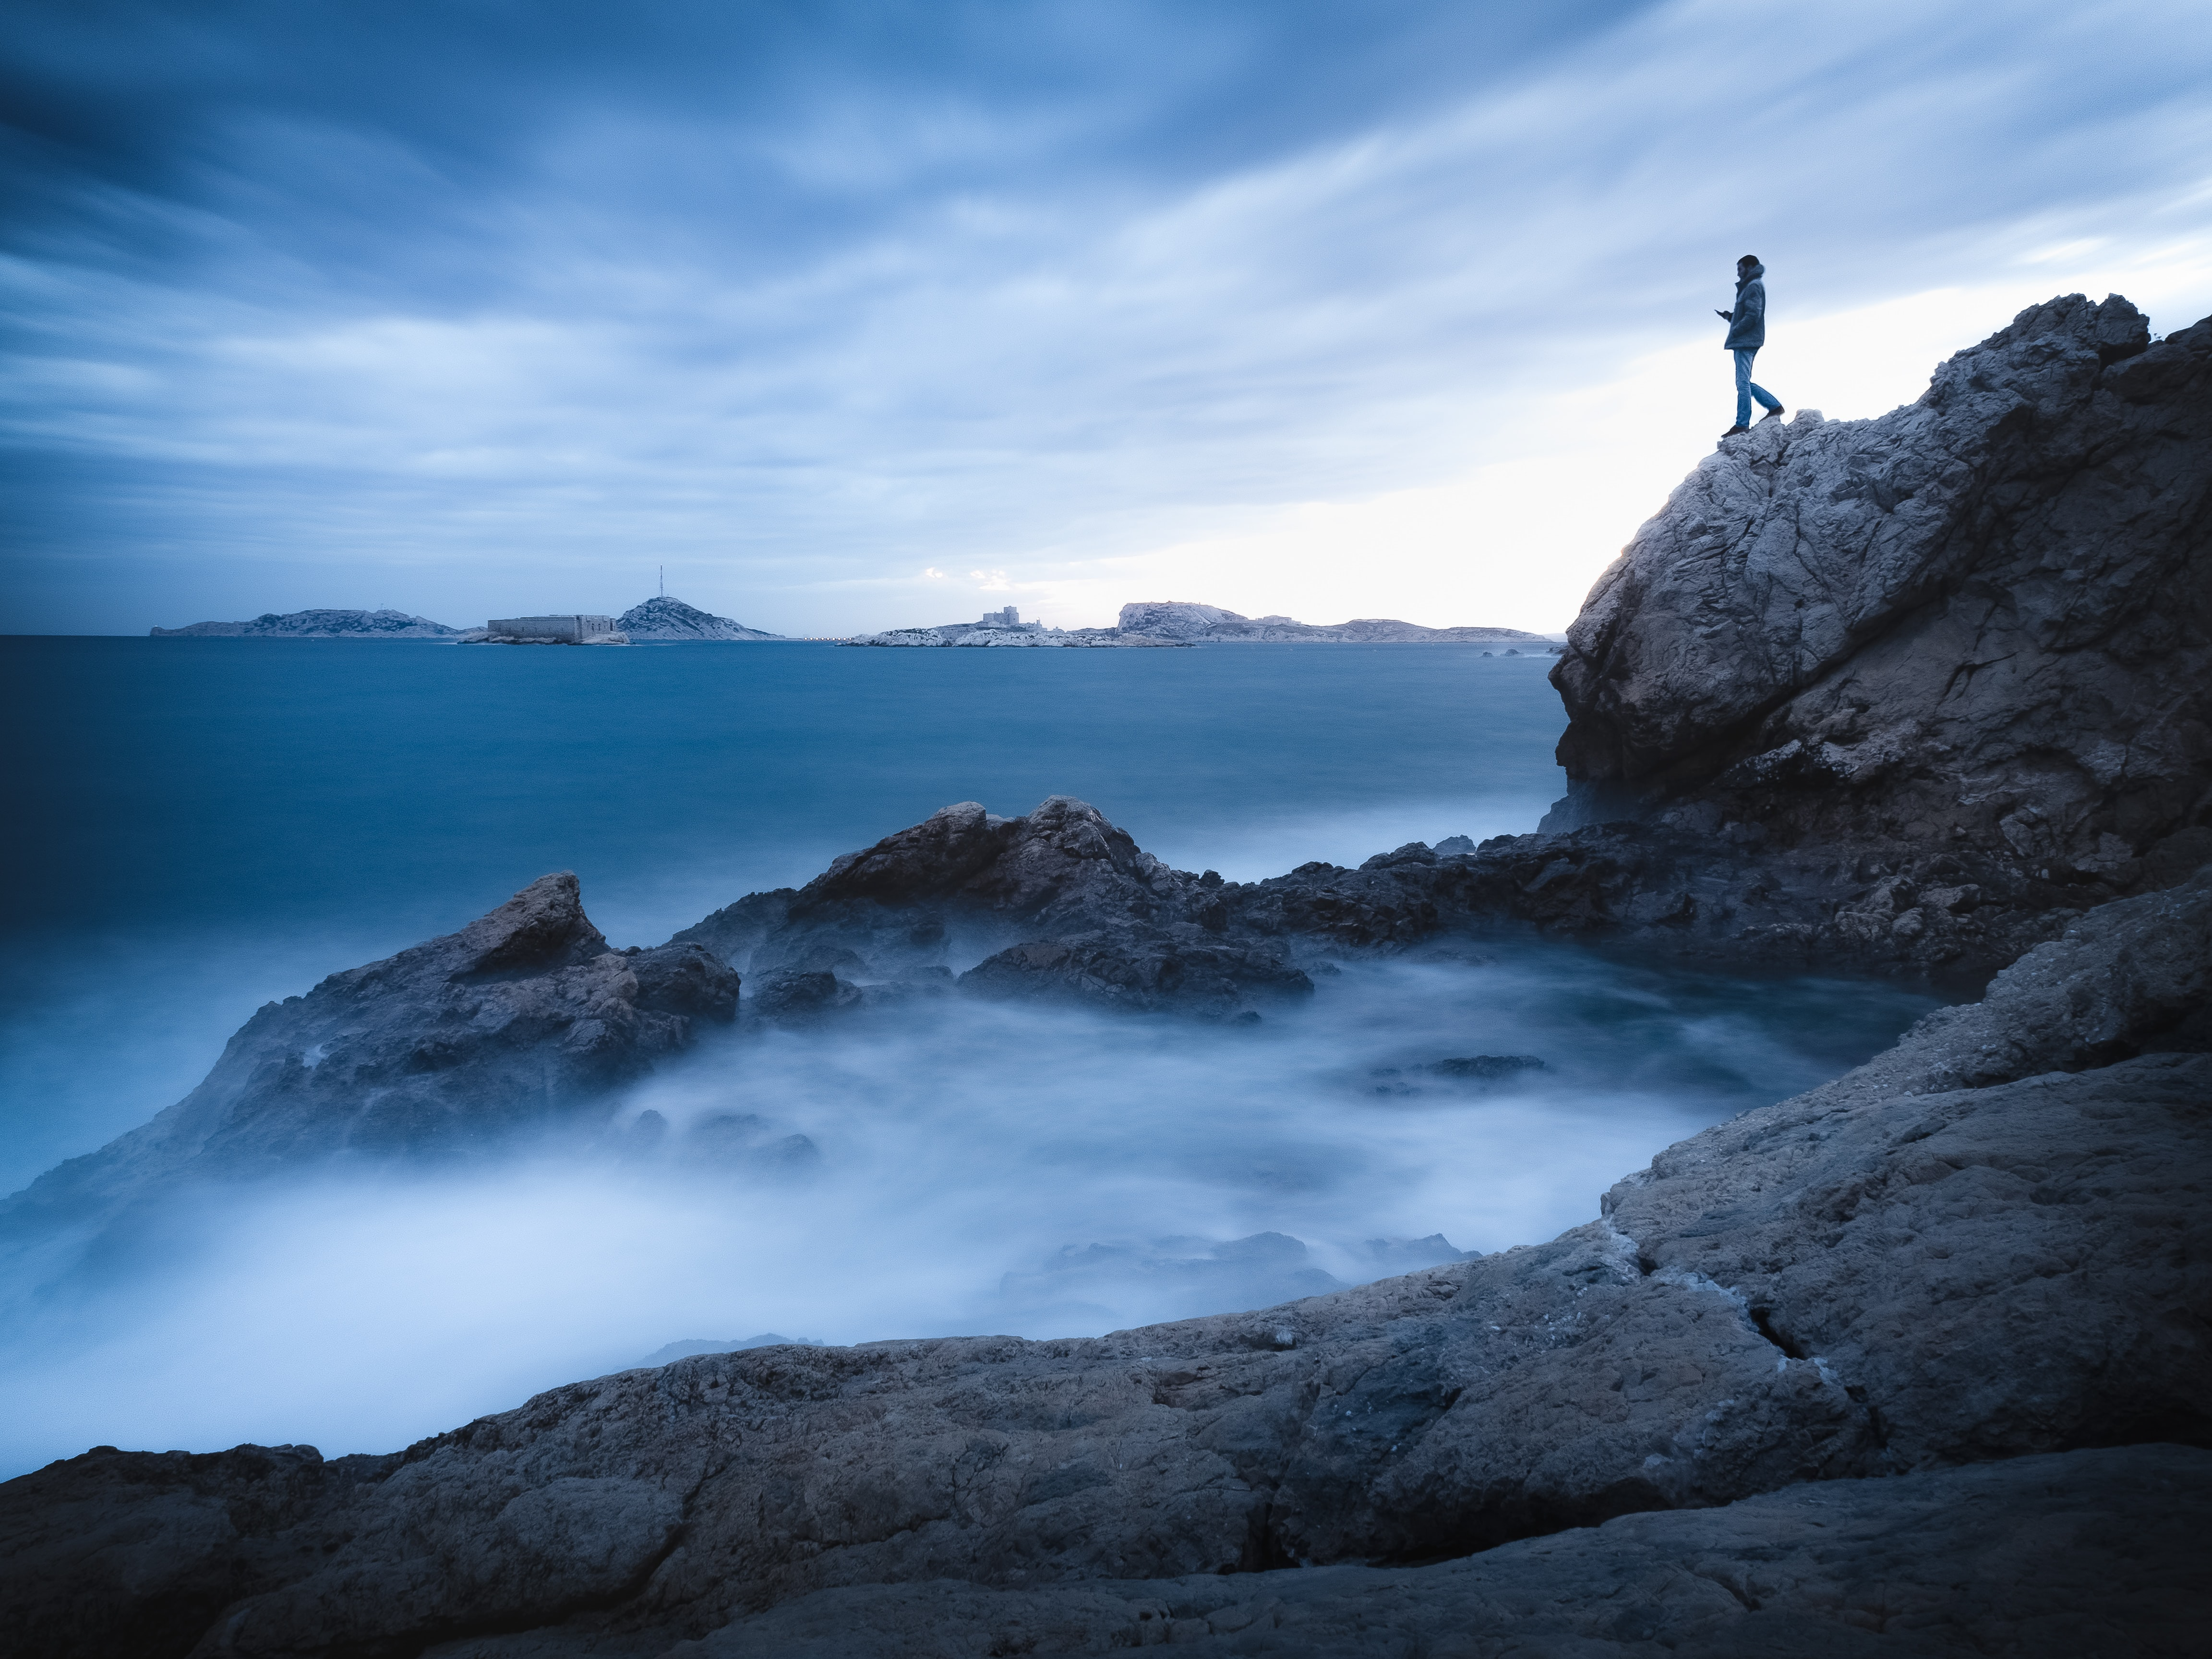 man standing on mountain cliff by the sea